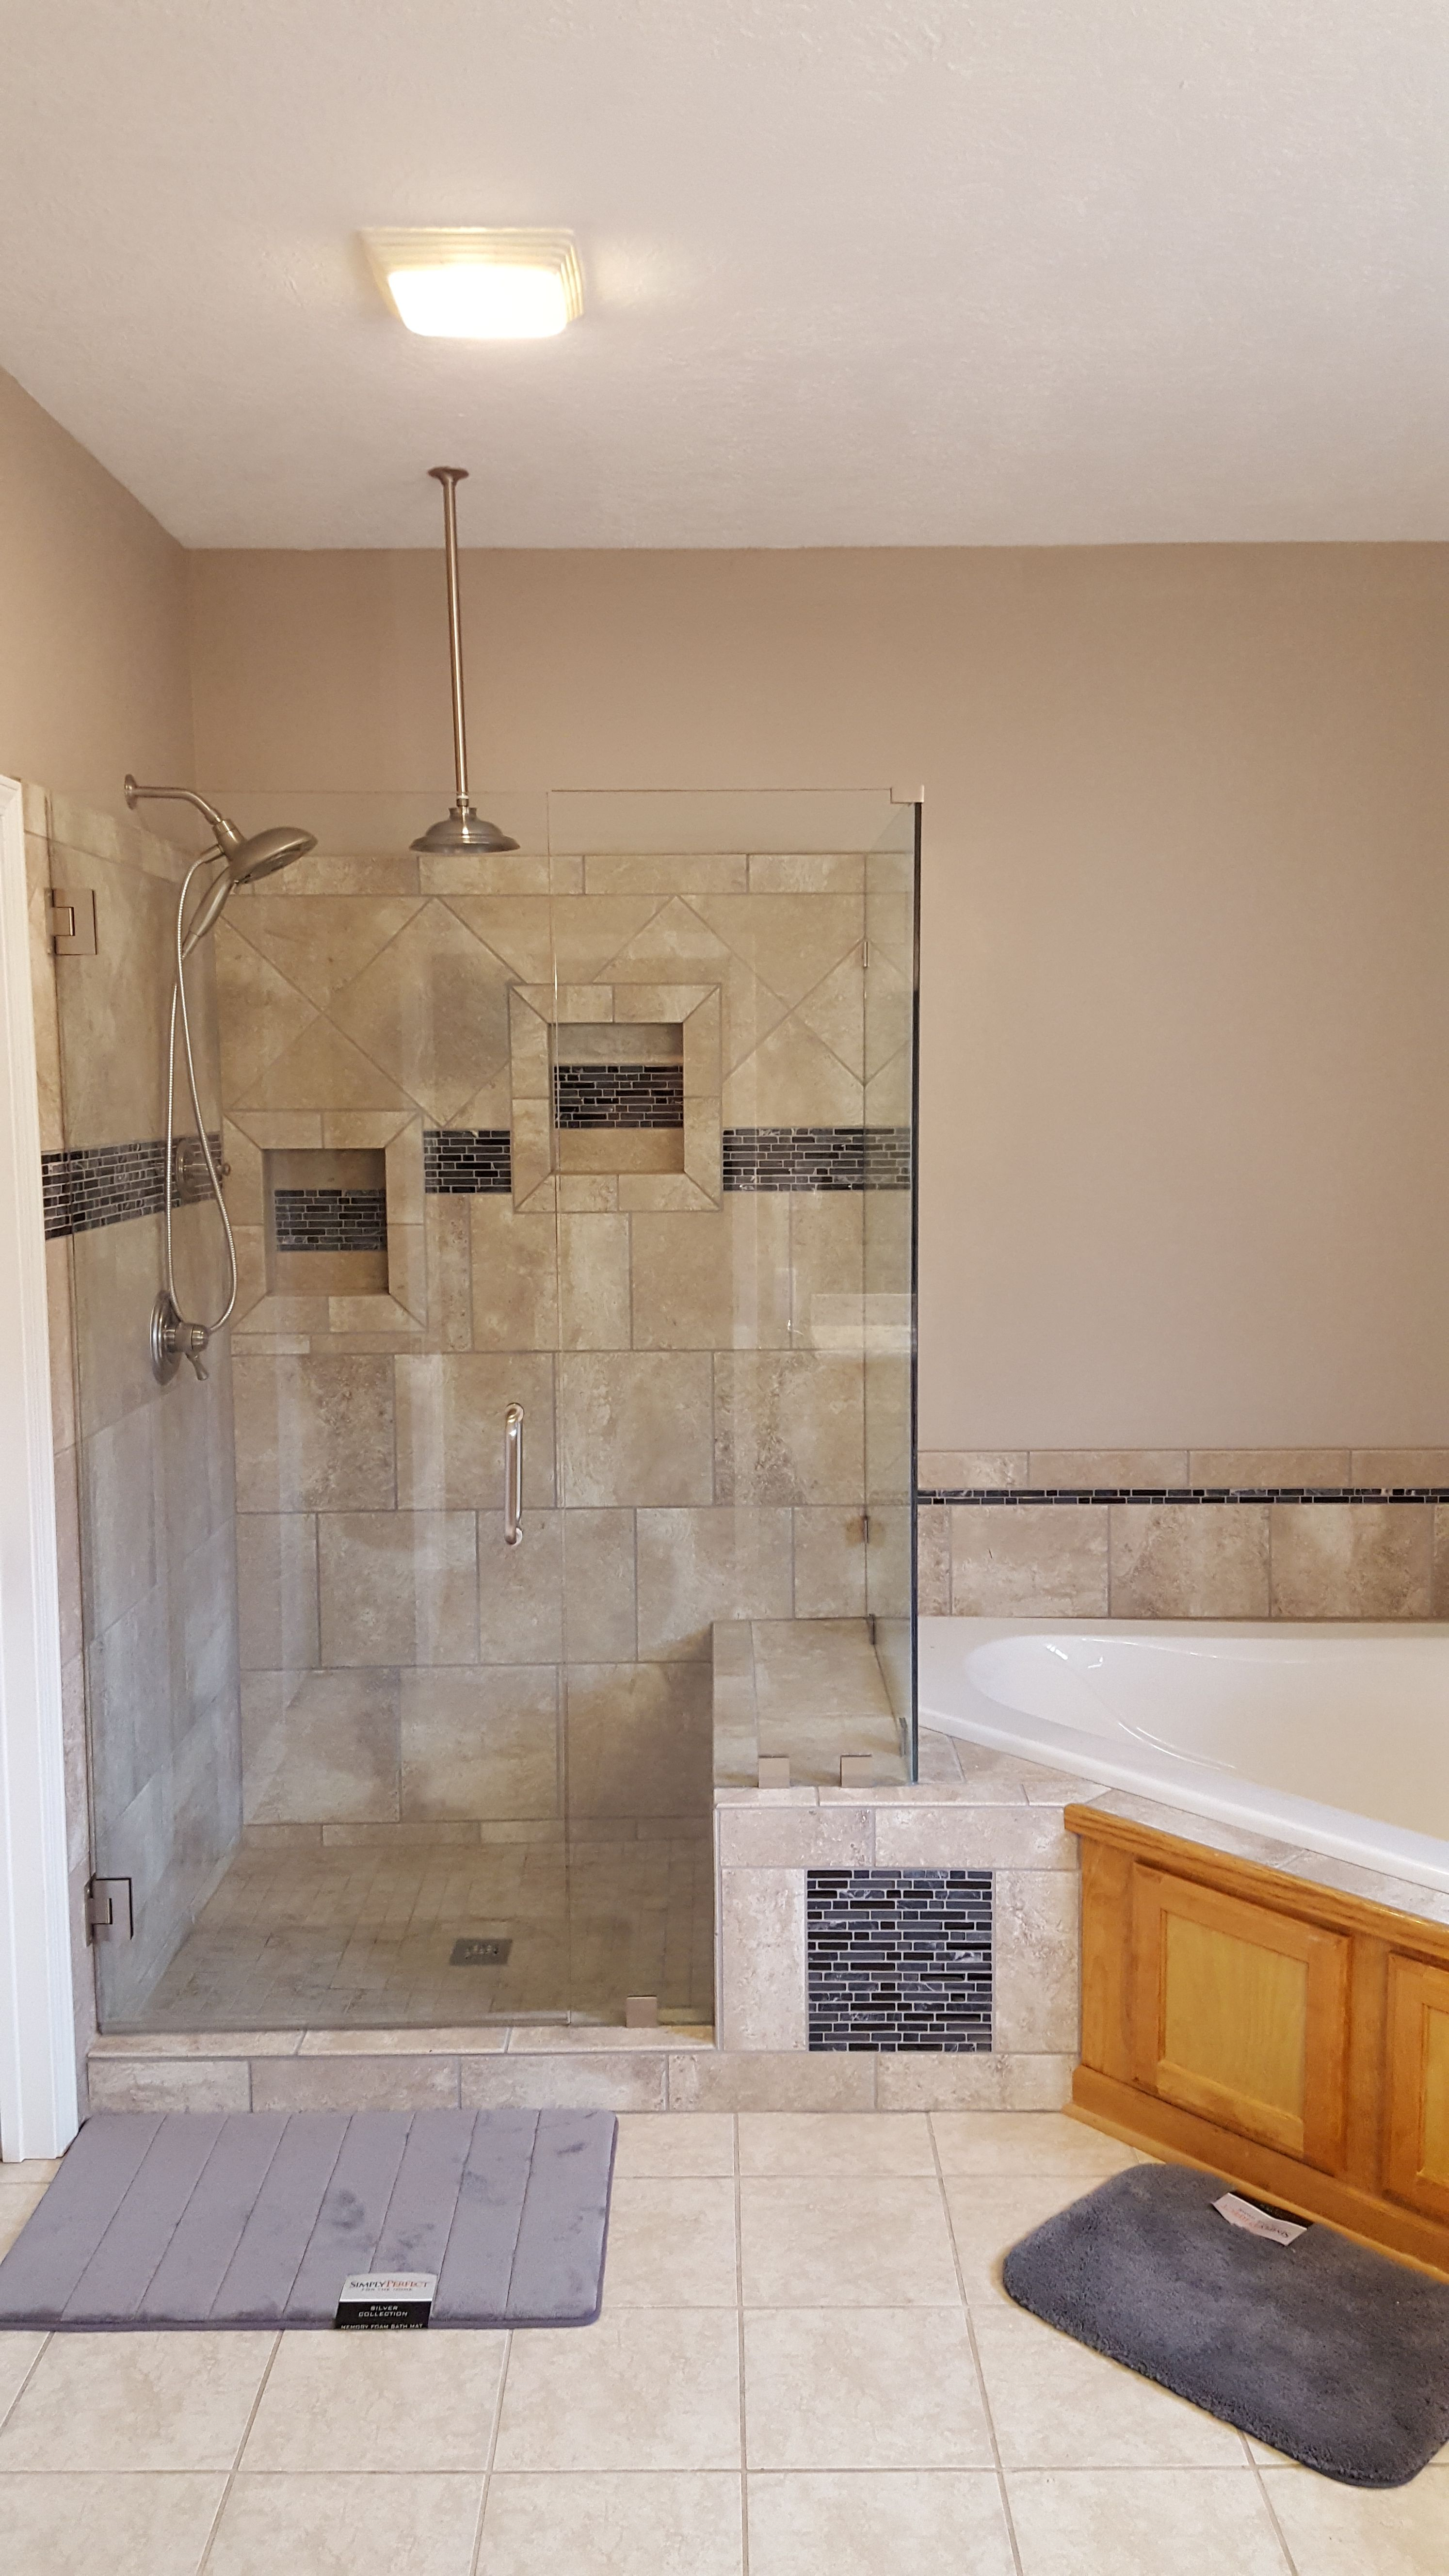 Pin By Kbrs Inc On Custom Shower Pans The Tileable Basin With